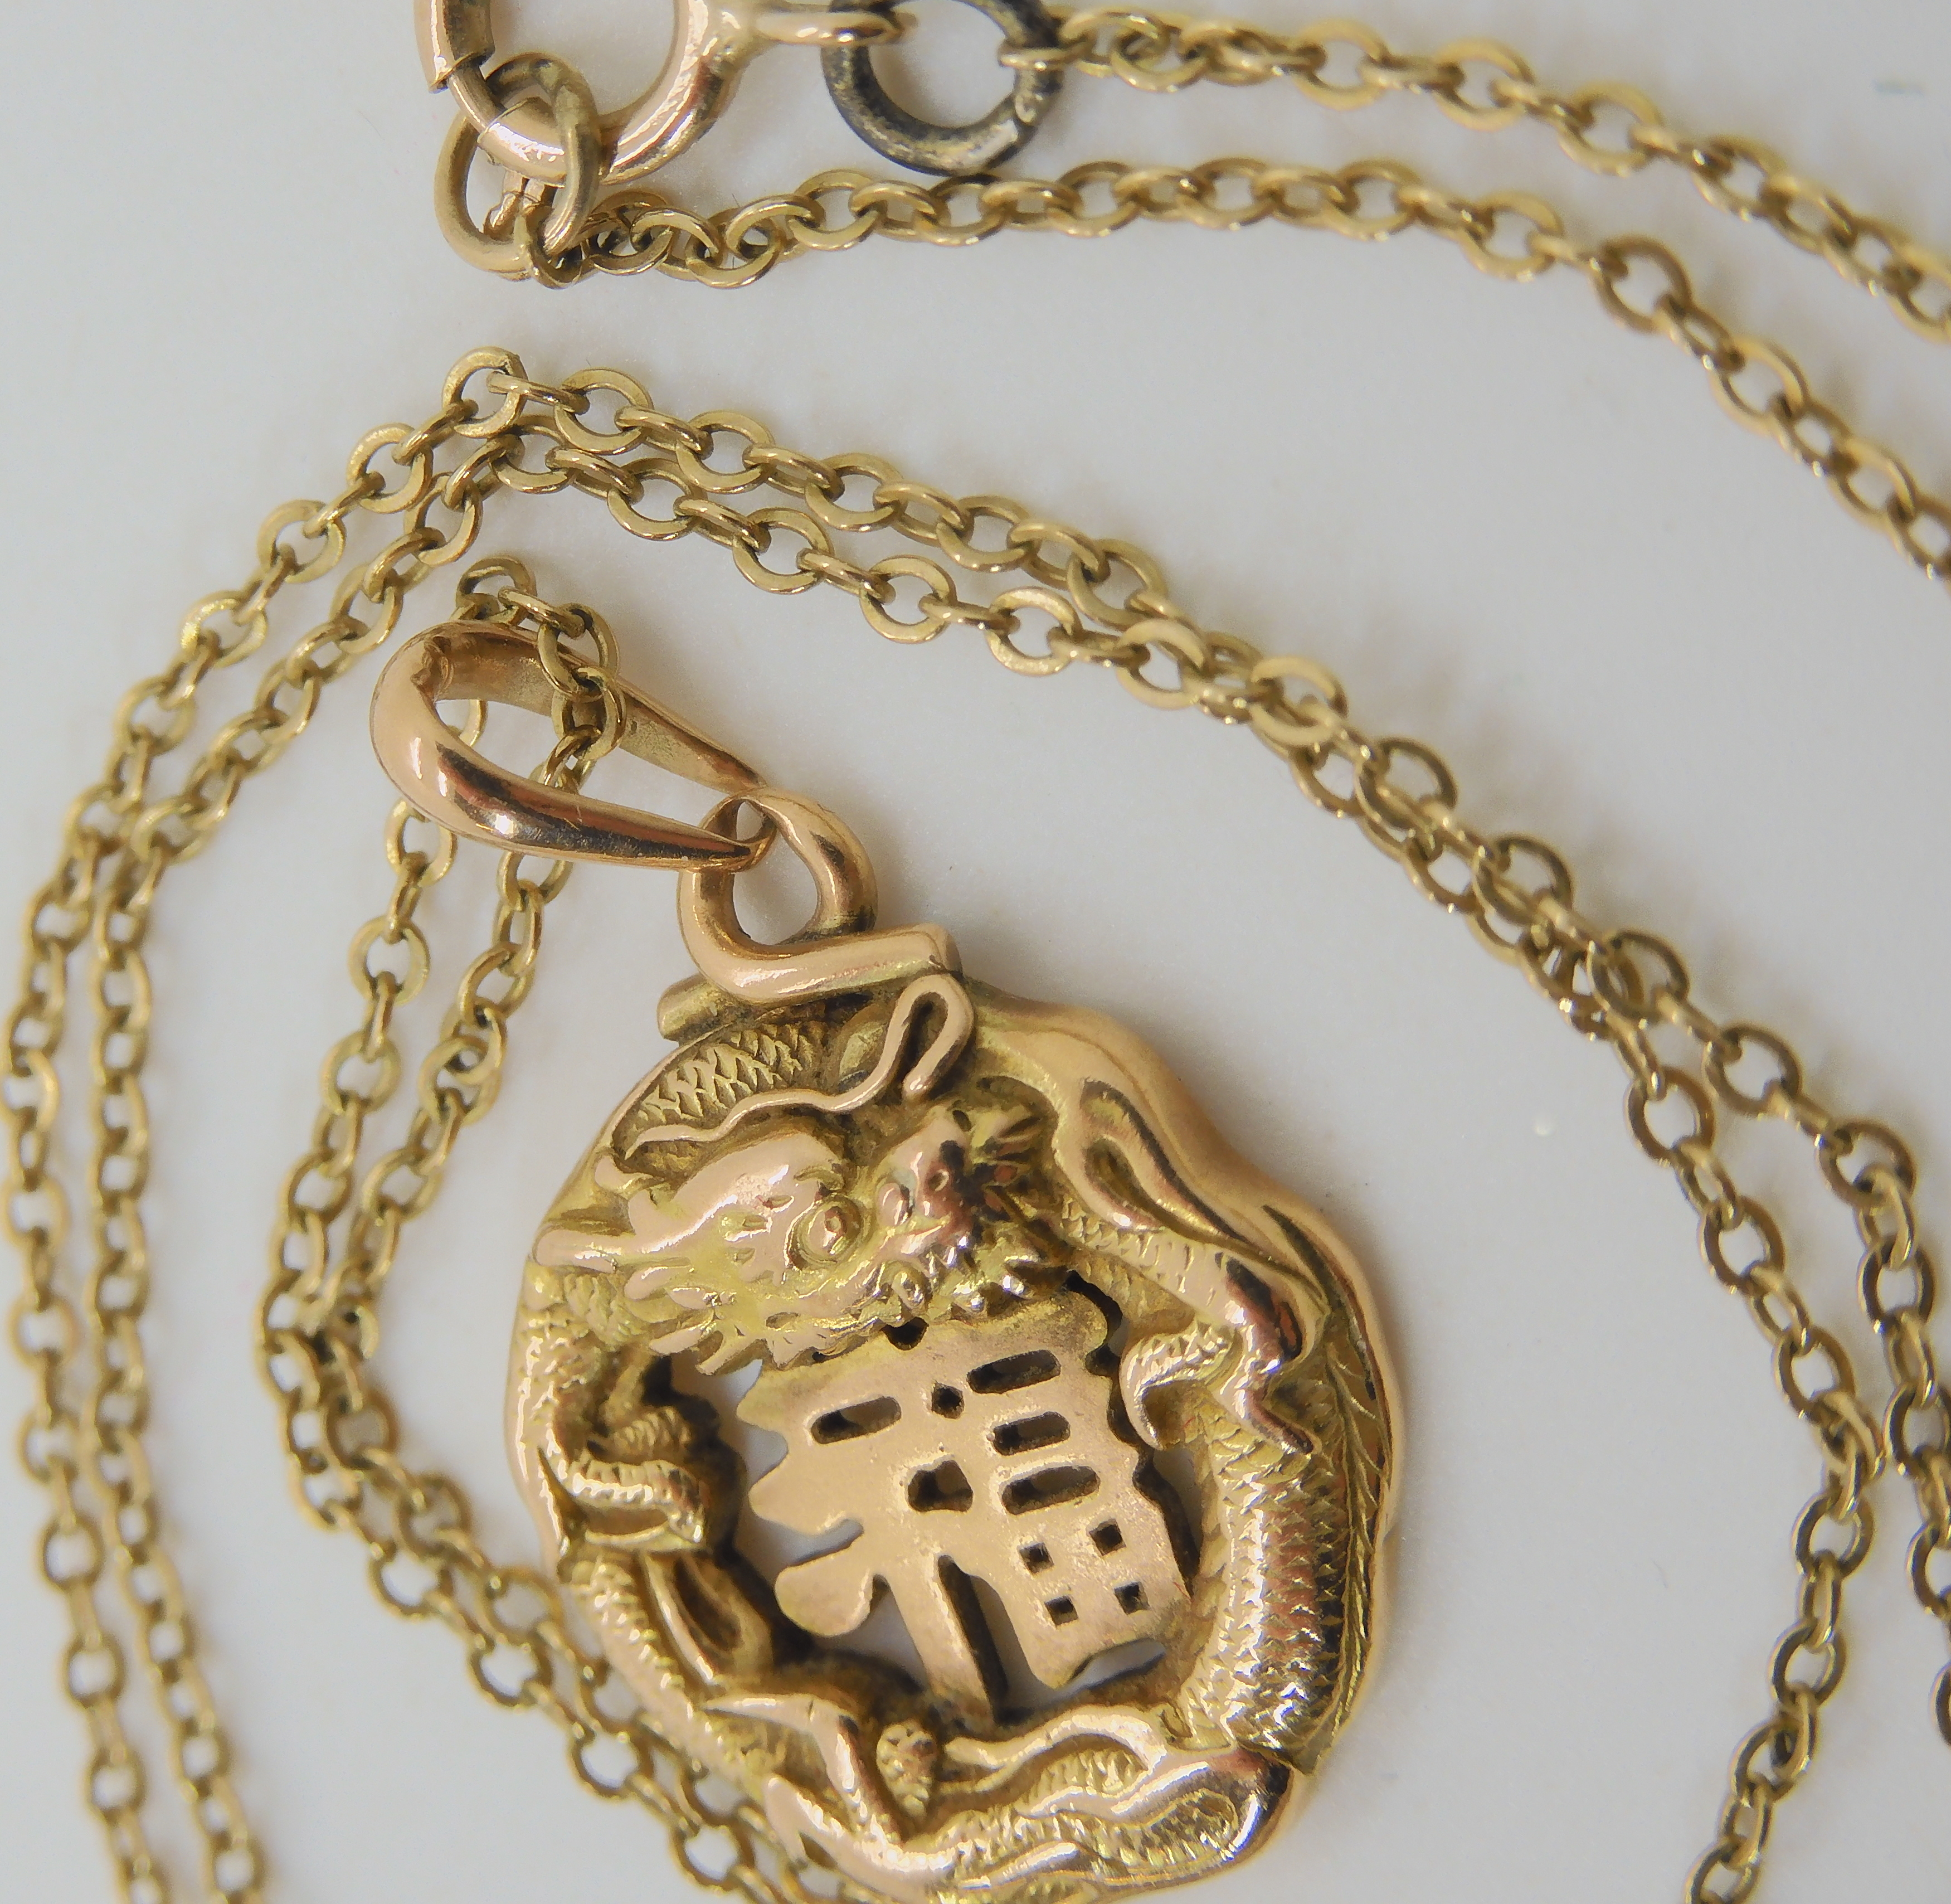 A CHINESE 16K GOLD DRAGON PENDANT the dragon coiled around a Chinese symbol, Chinese stamps to the - Image 2 of 3